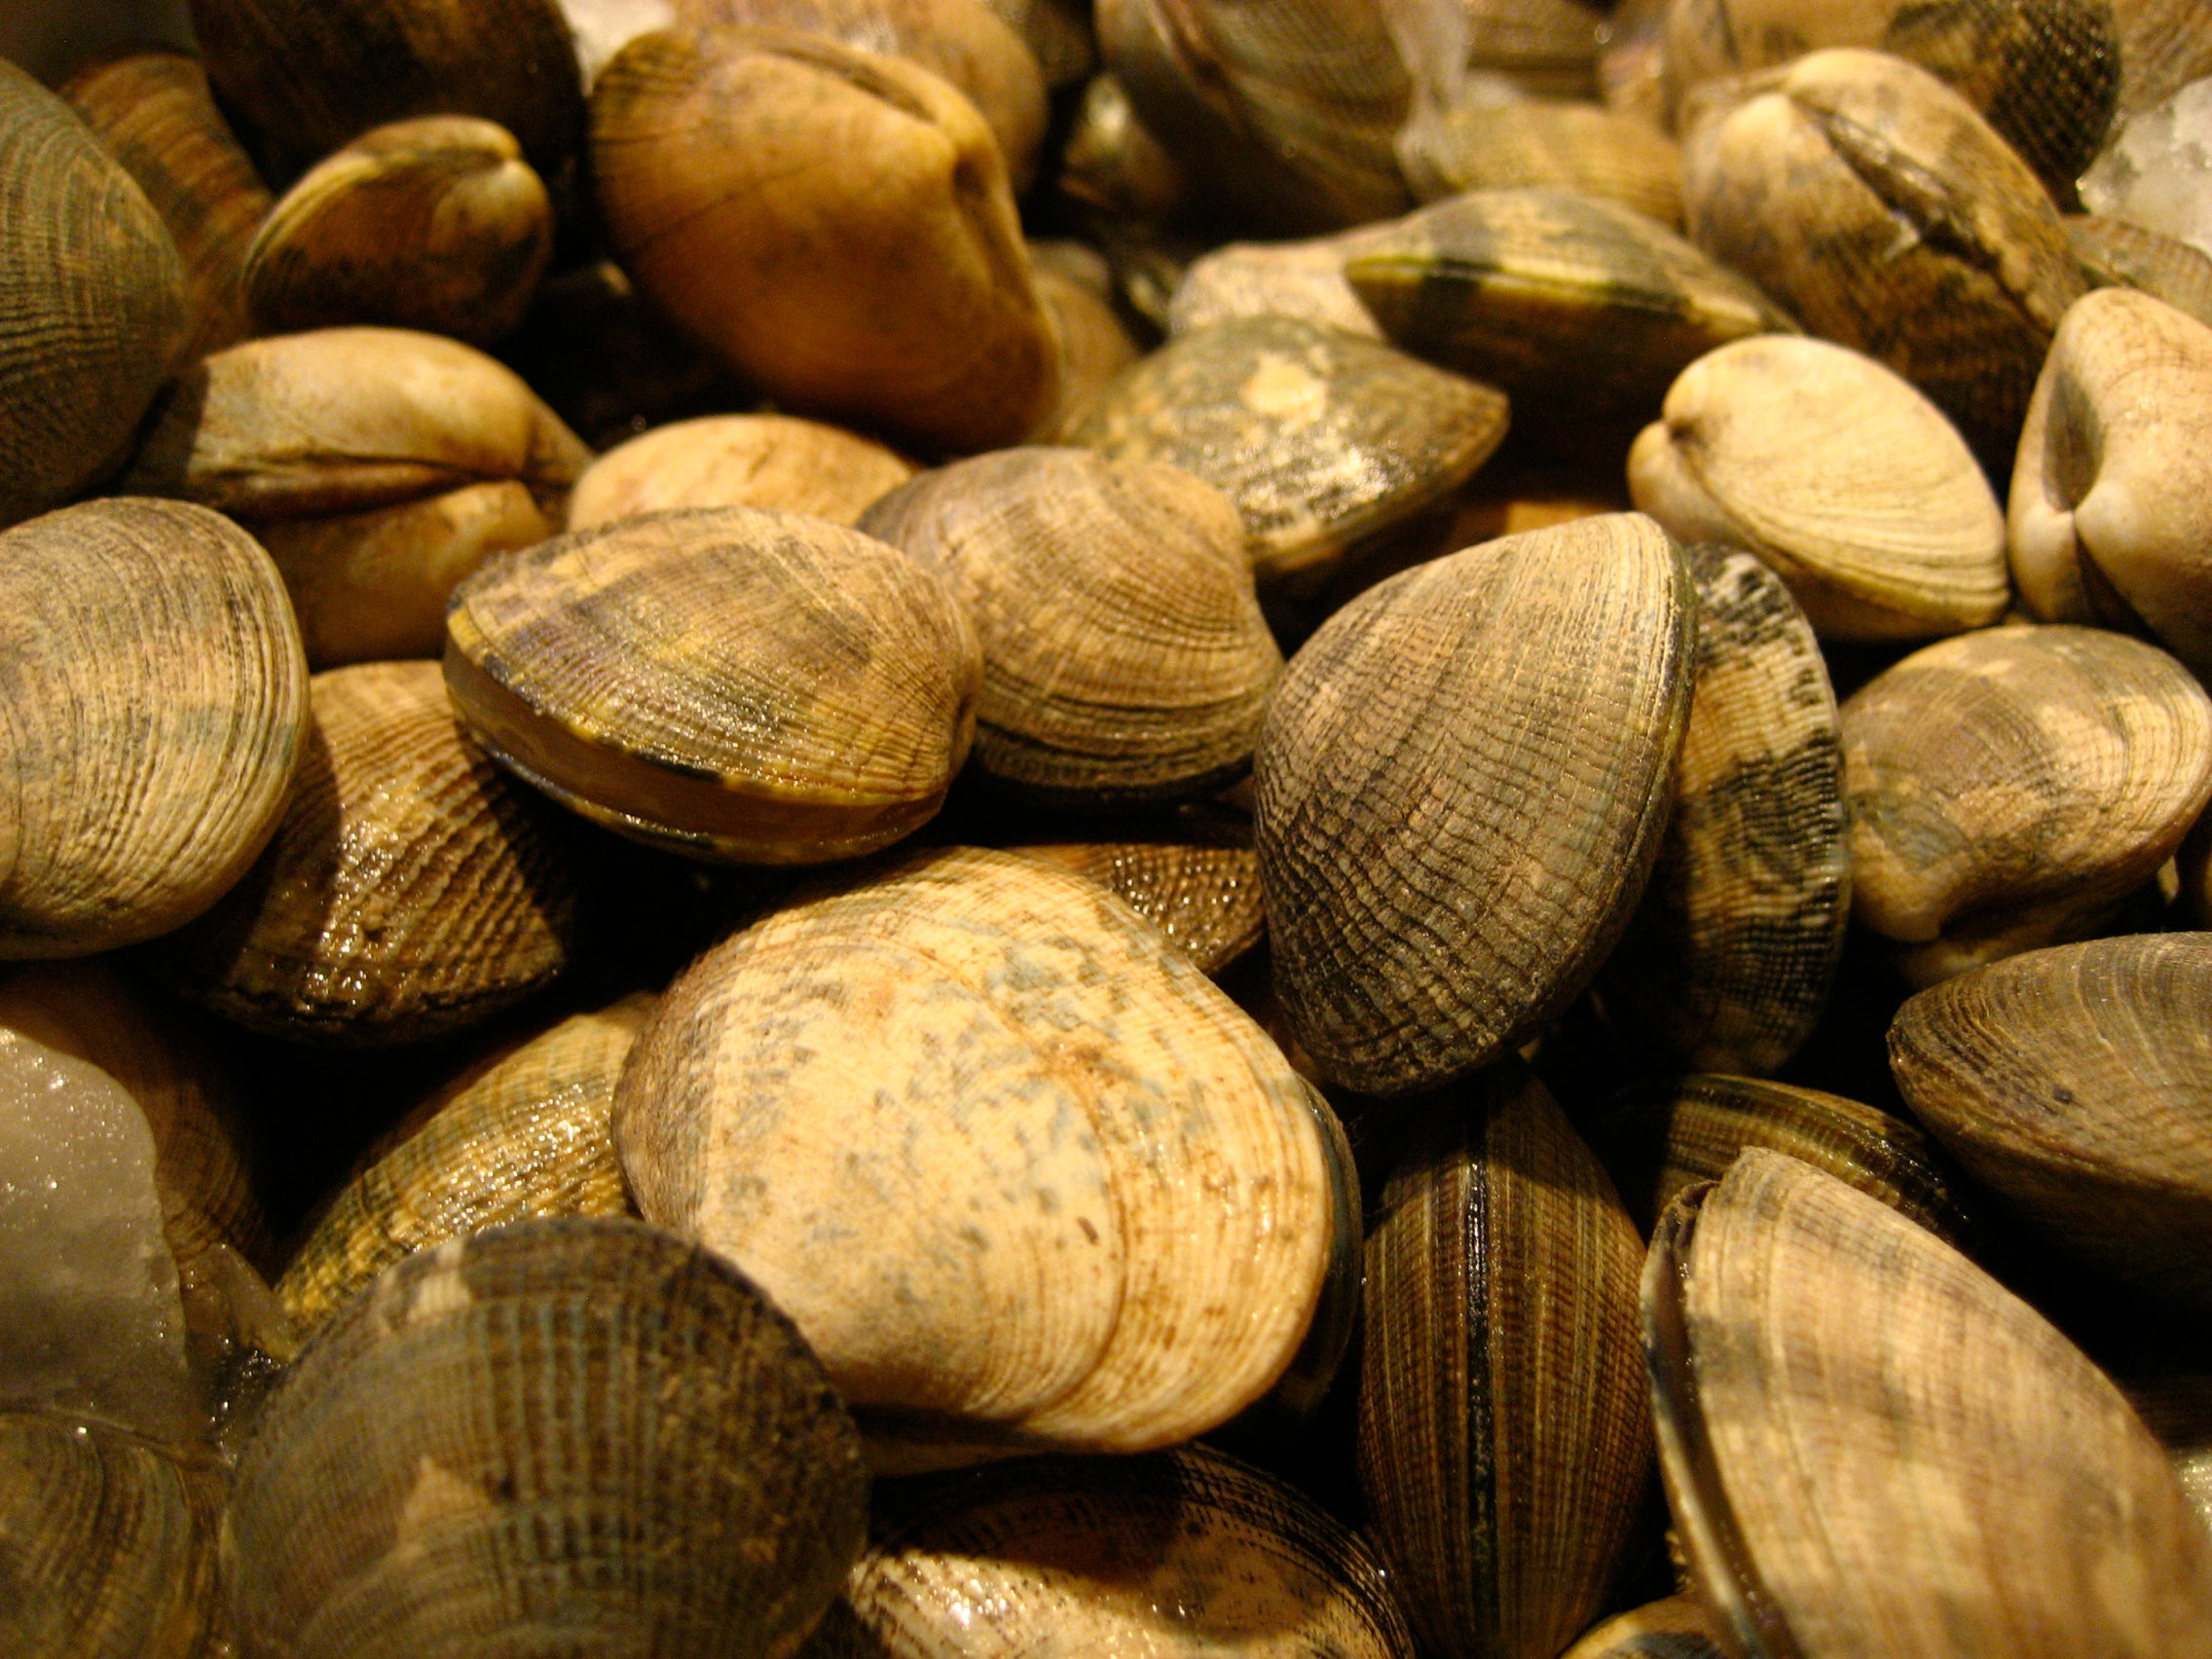 Free-Floating Cancer Cells Are Infecting Clams On The East Coast